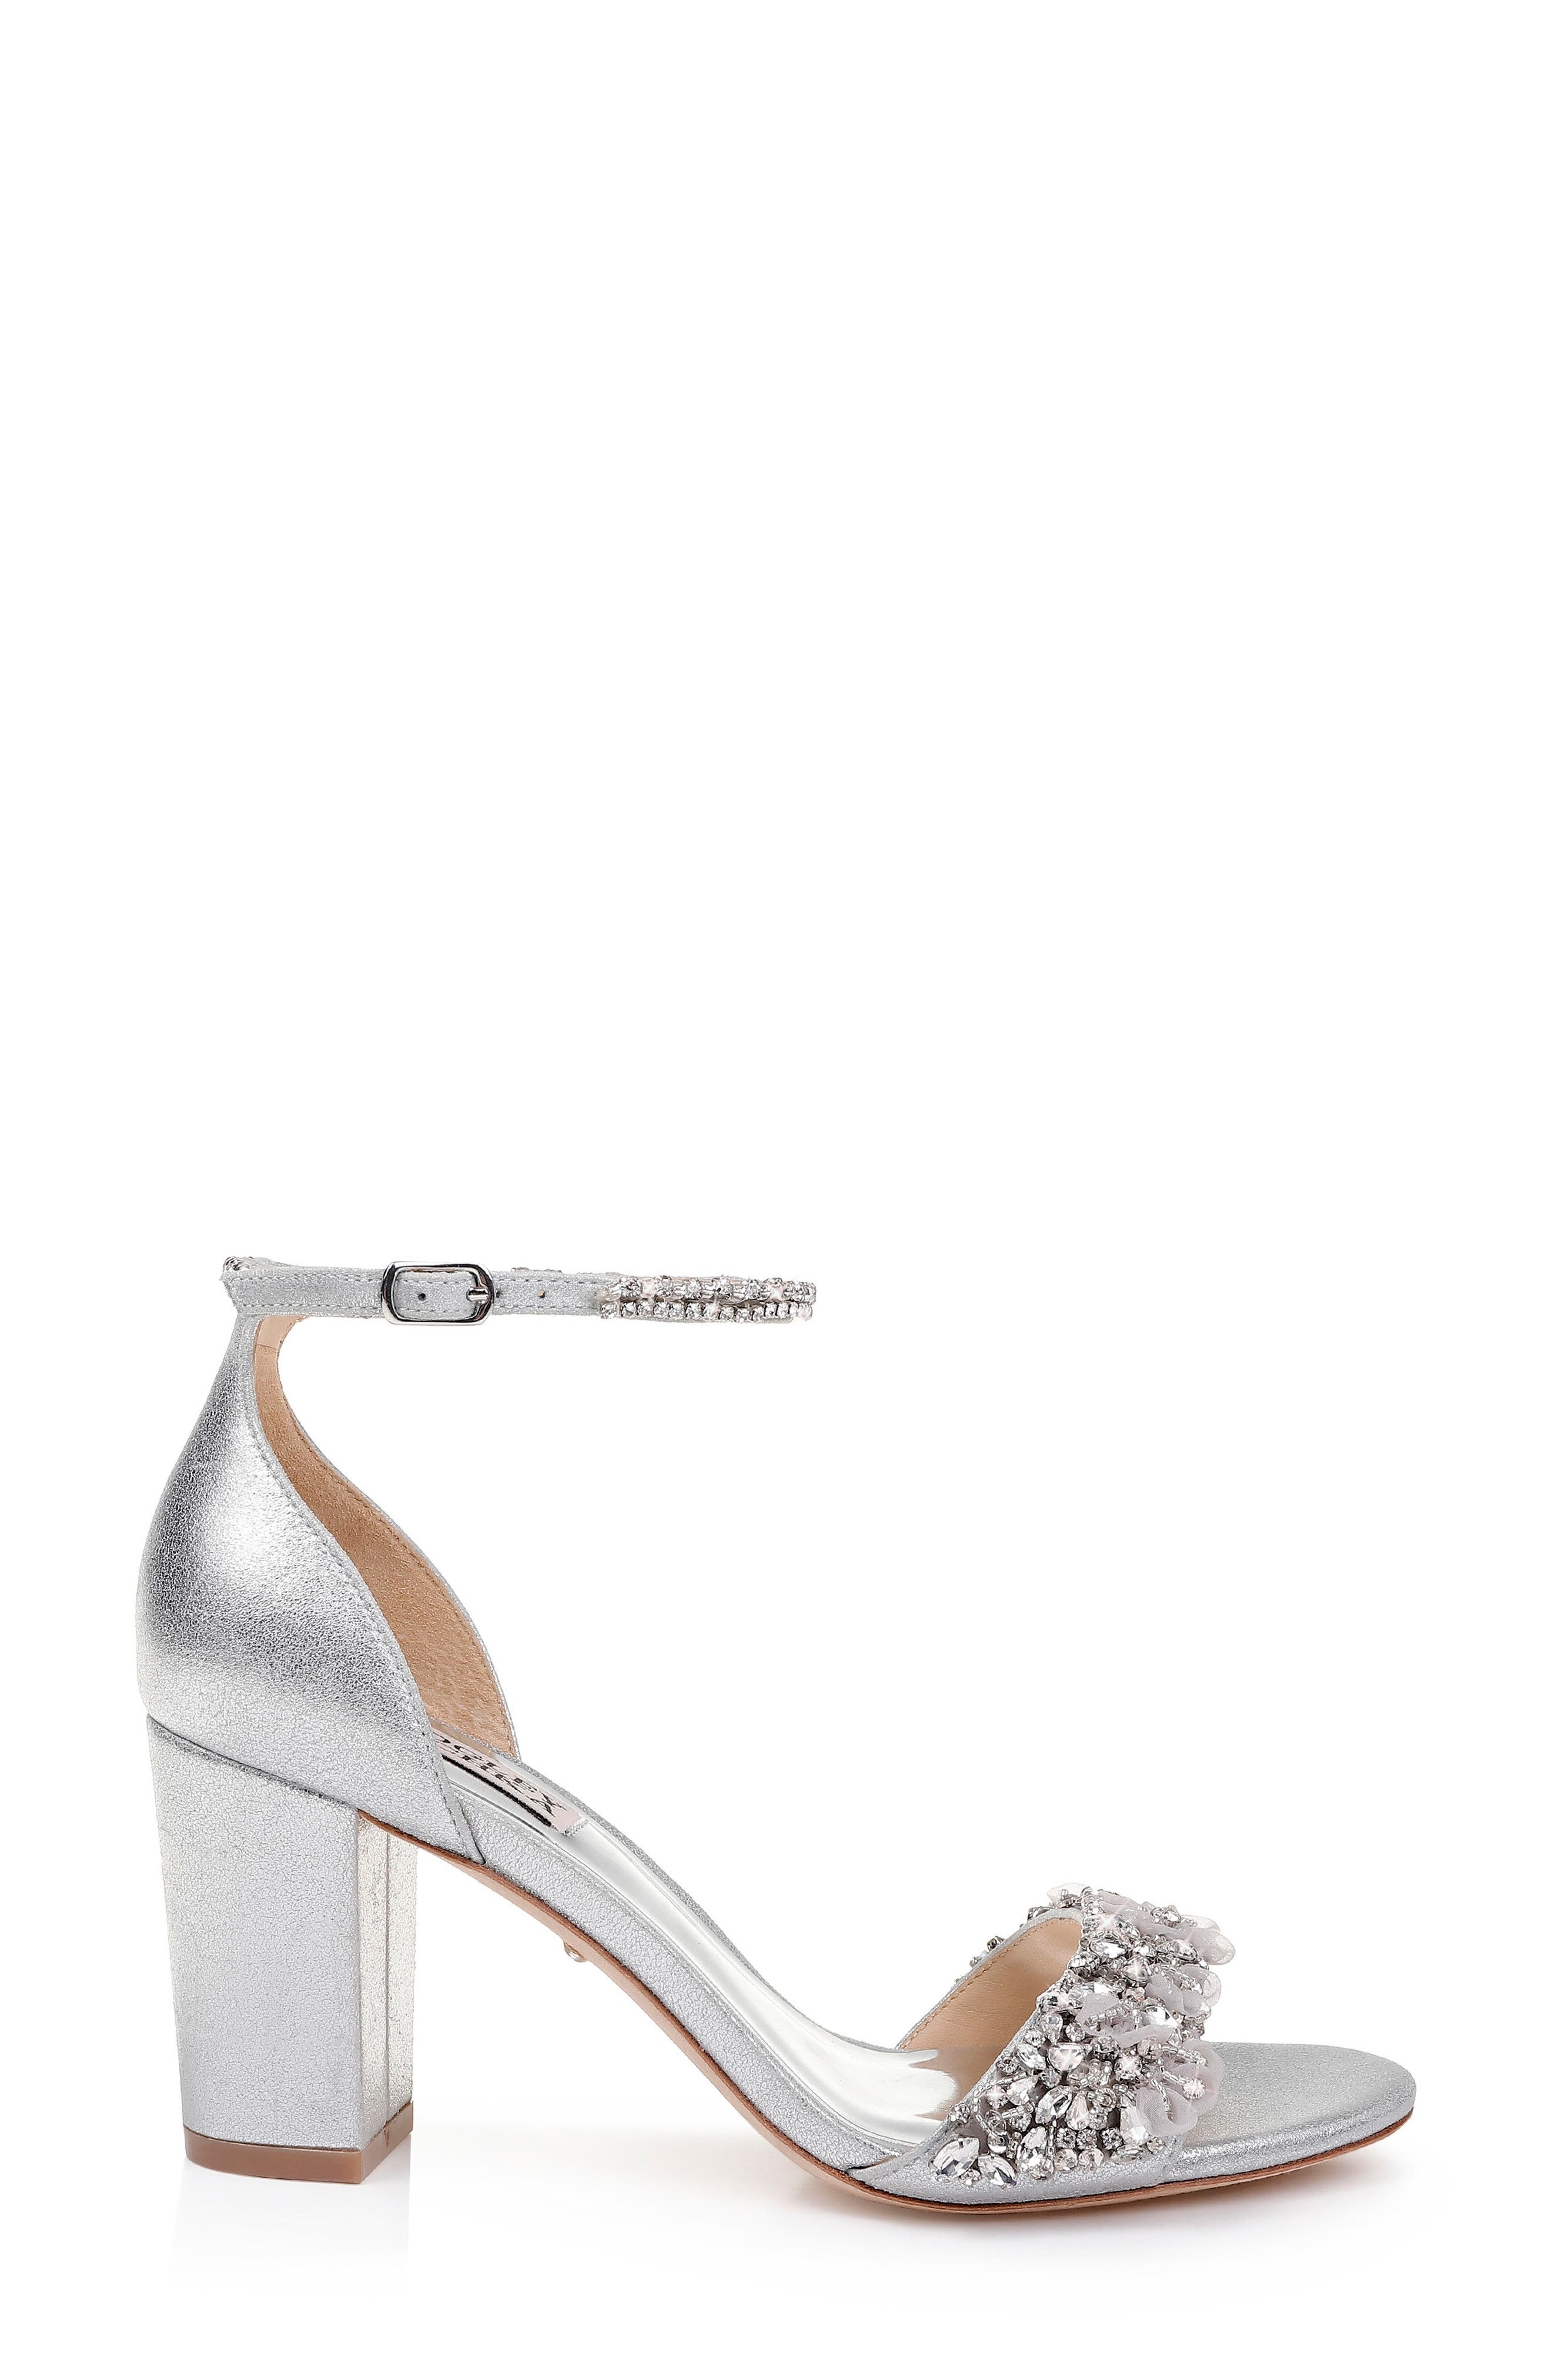 BADGLEY MISCHKA COLLECTION, Badgley Mischka Finesse Embellished Ankle Strap Sandal, Alternate thumbnail 3, color, SILVER METALLIC SATIN